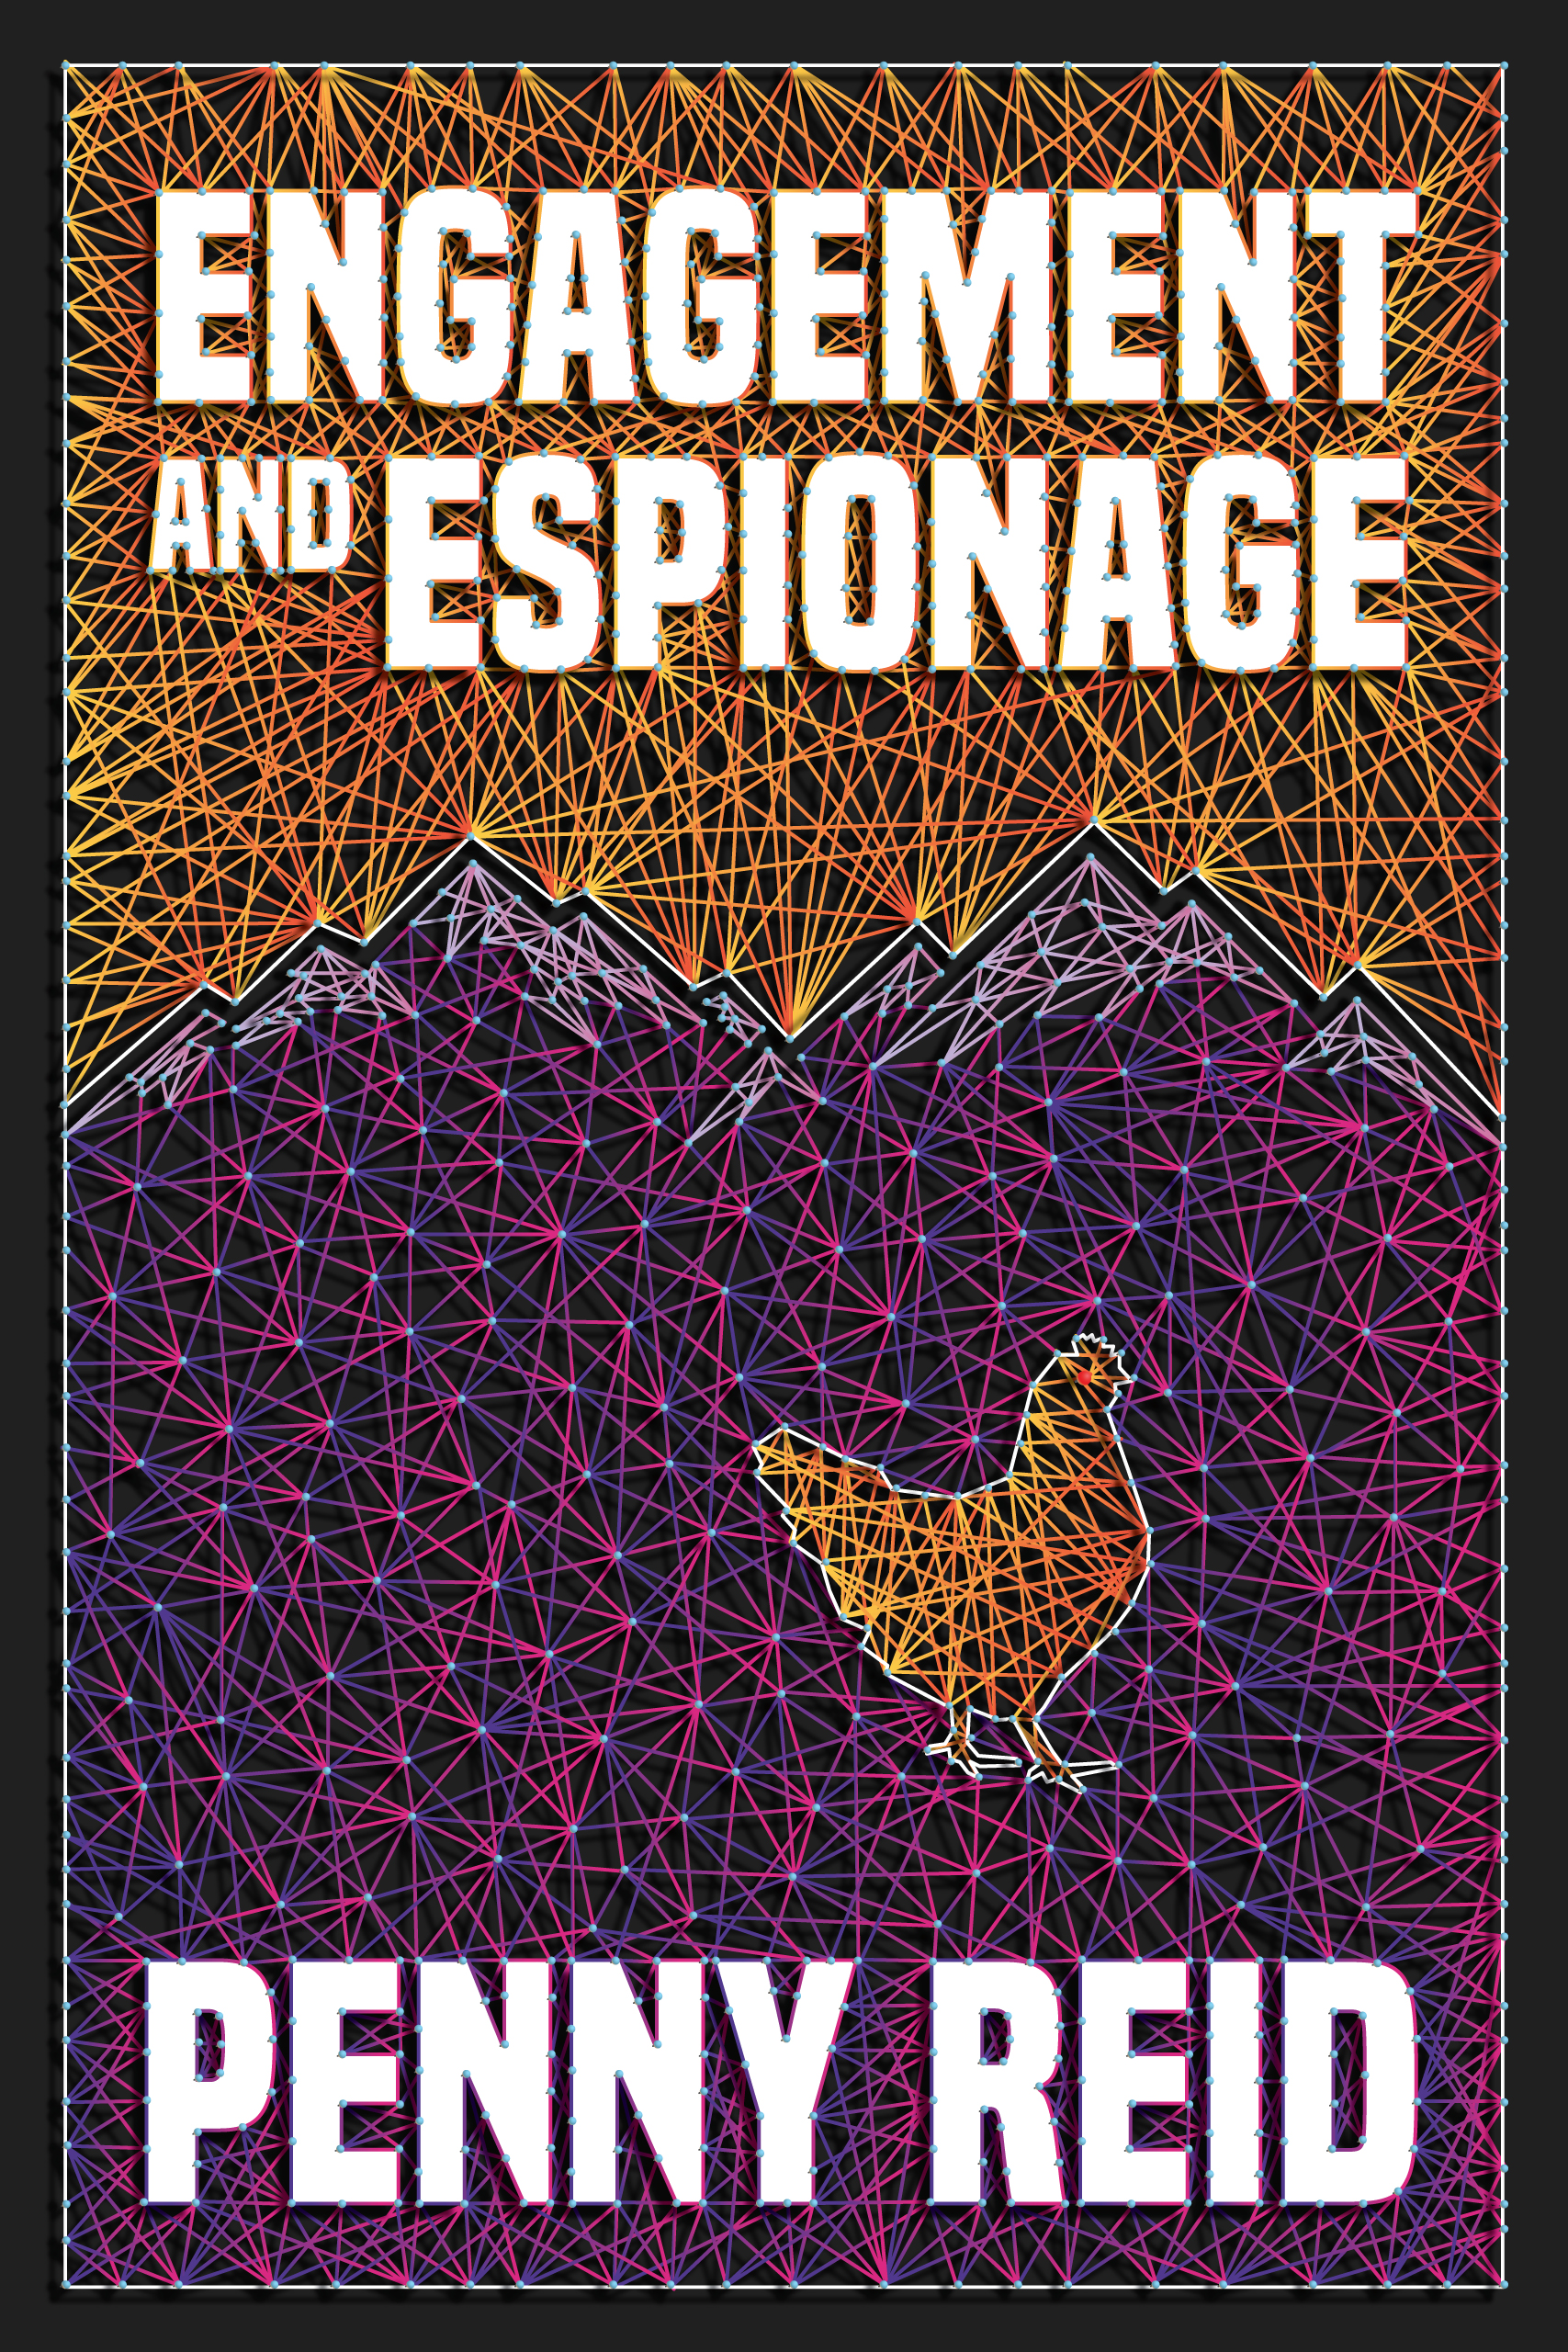 Engagement_and_espionage_cover_04-1_ebook_color2-1_2560x1707